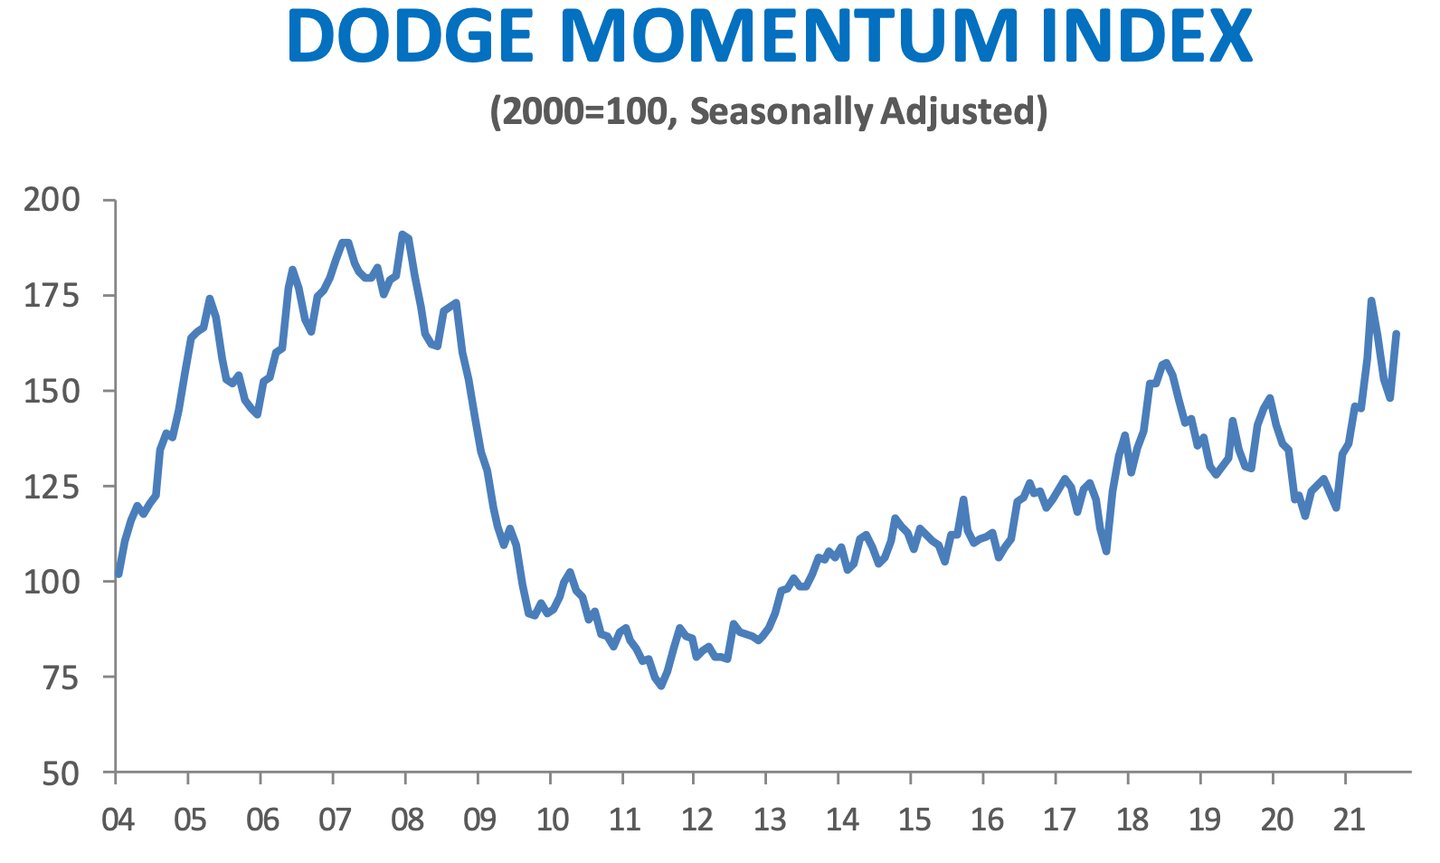 Dodge Momentum Index over time